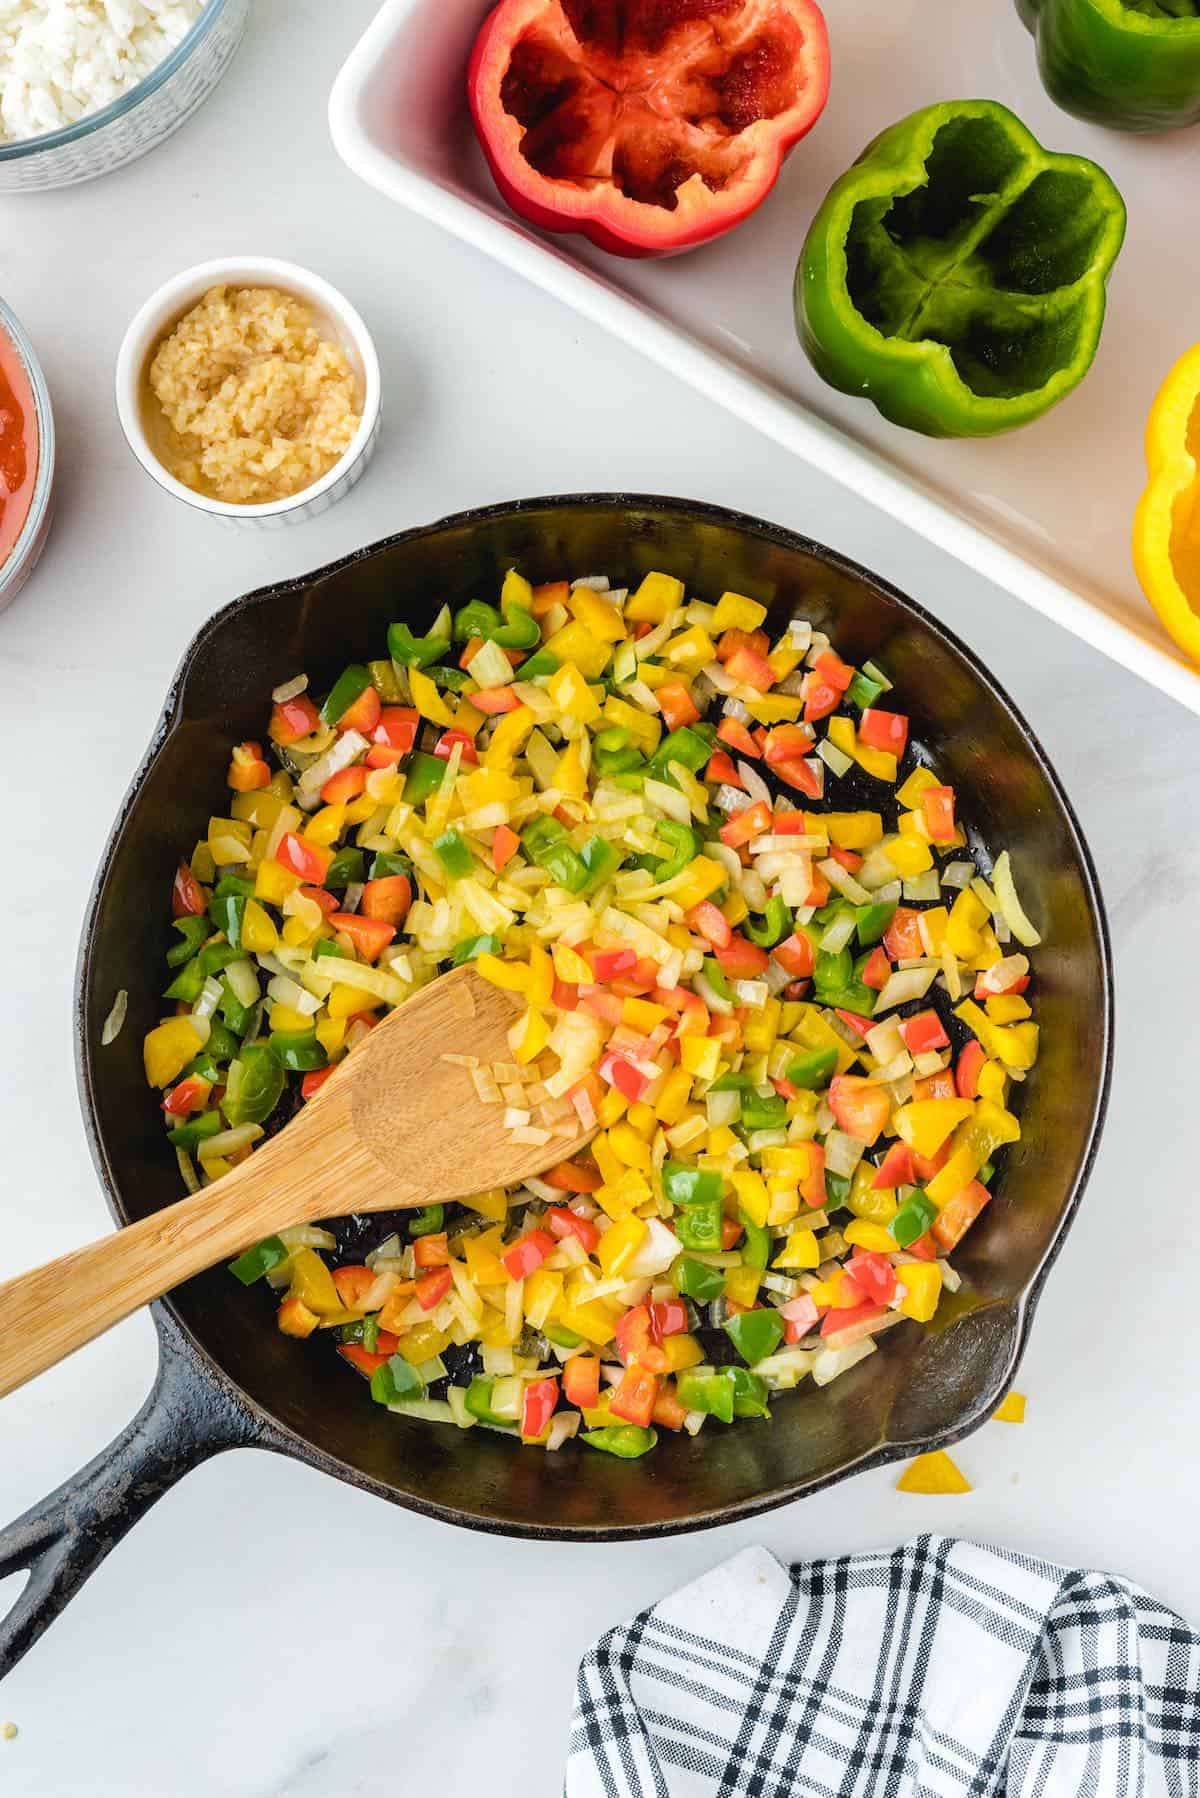 olive oil, diced onion, pepper tops in a skillet